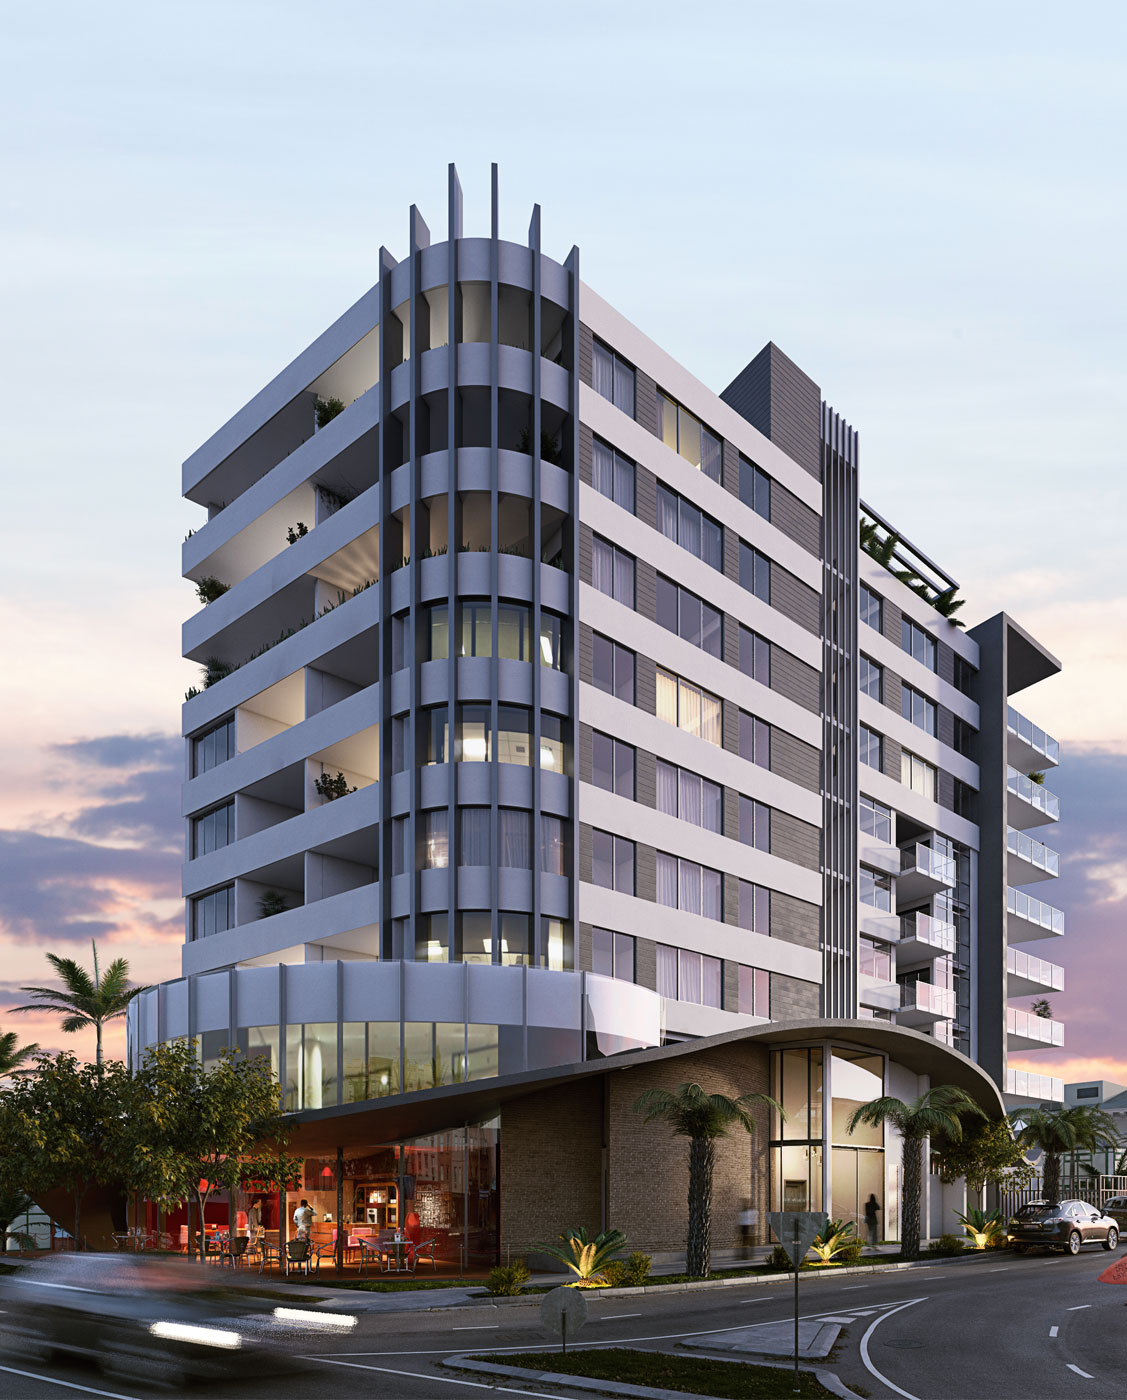 Peerless Ave & Gold Coast Highway, Broadbeach